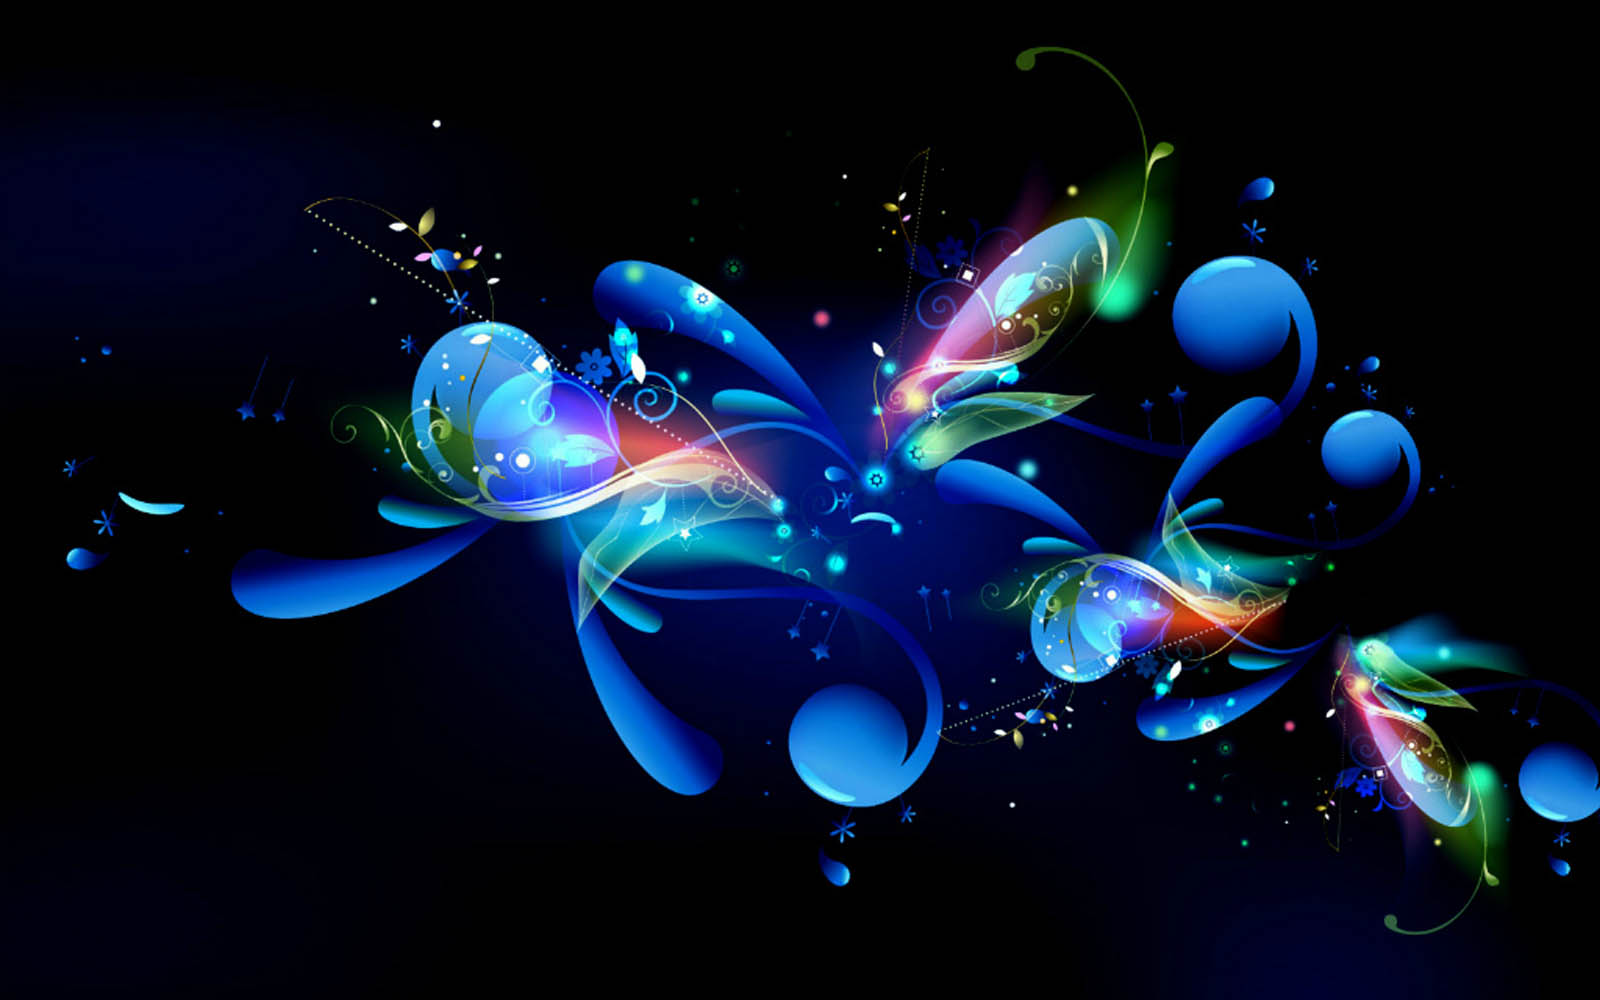 Awesome Abstract Wallpapers BackgroundsPhotos Images and Pictures 1600x1000